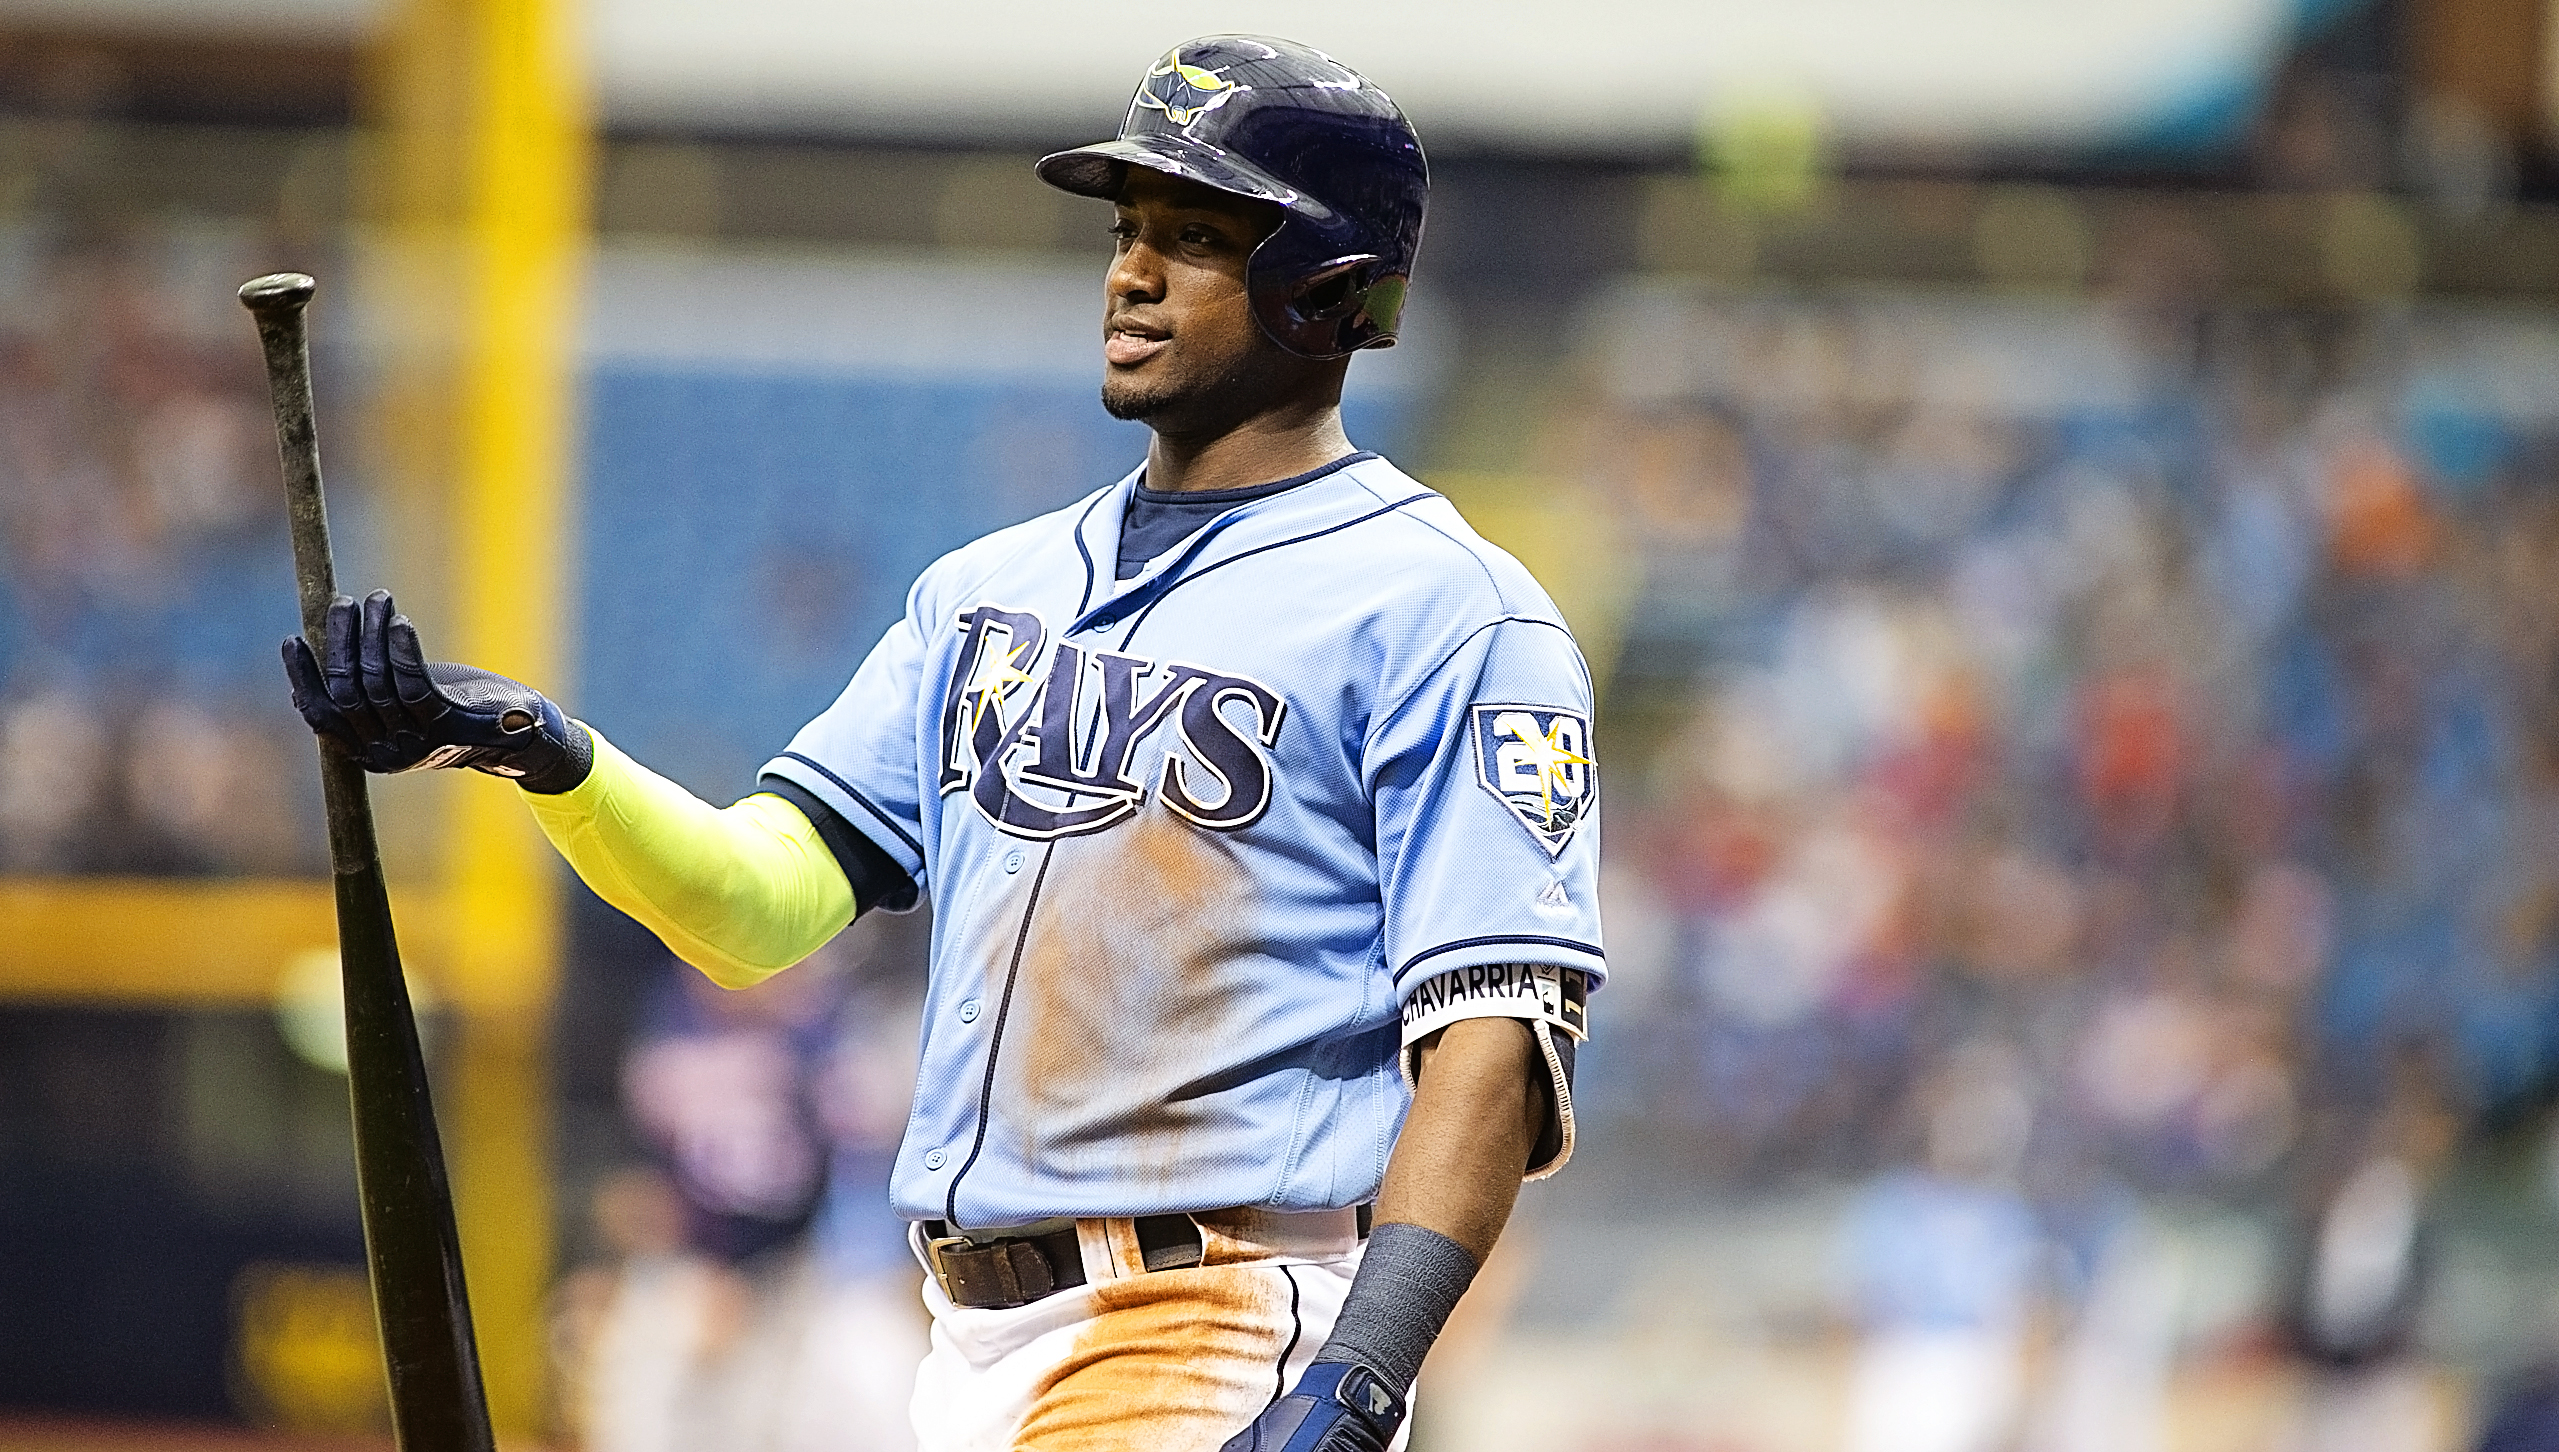 Hechavarria hit a three-run homer to give the Rays a 6-3 lead./CARMEN MANDATO